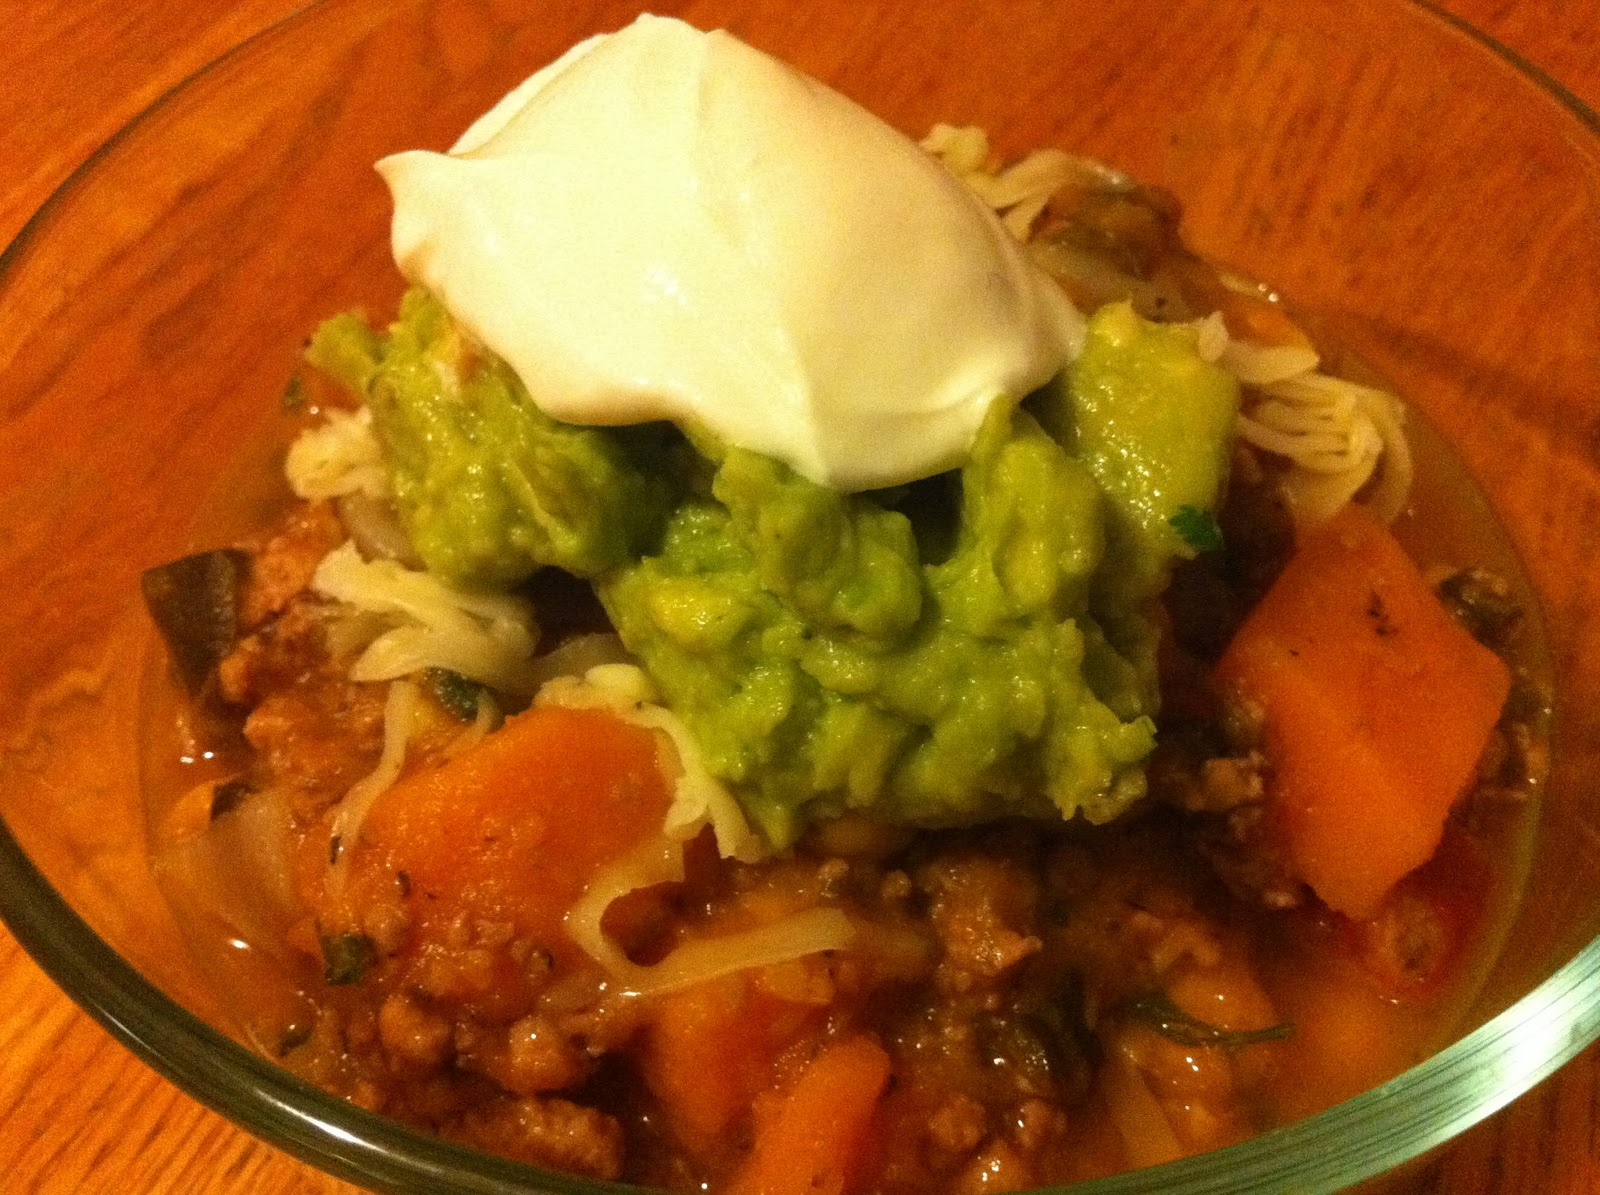 Dillan DiGiovanni, CHC: Turkey Chili Verde with Butternut Squash ...